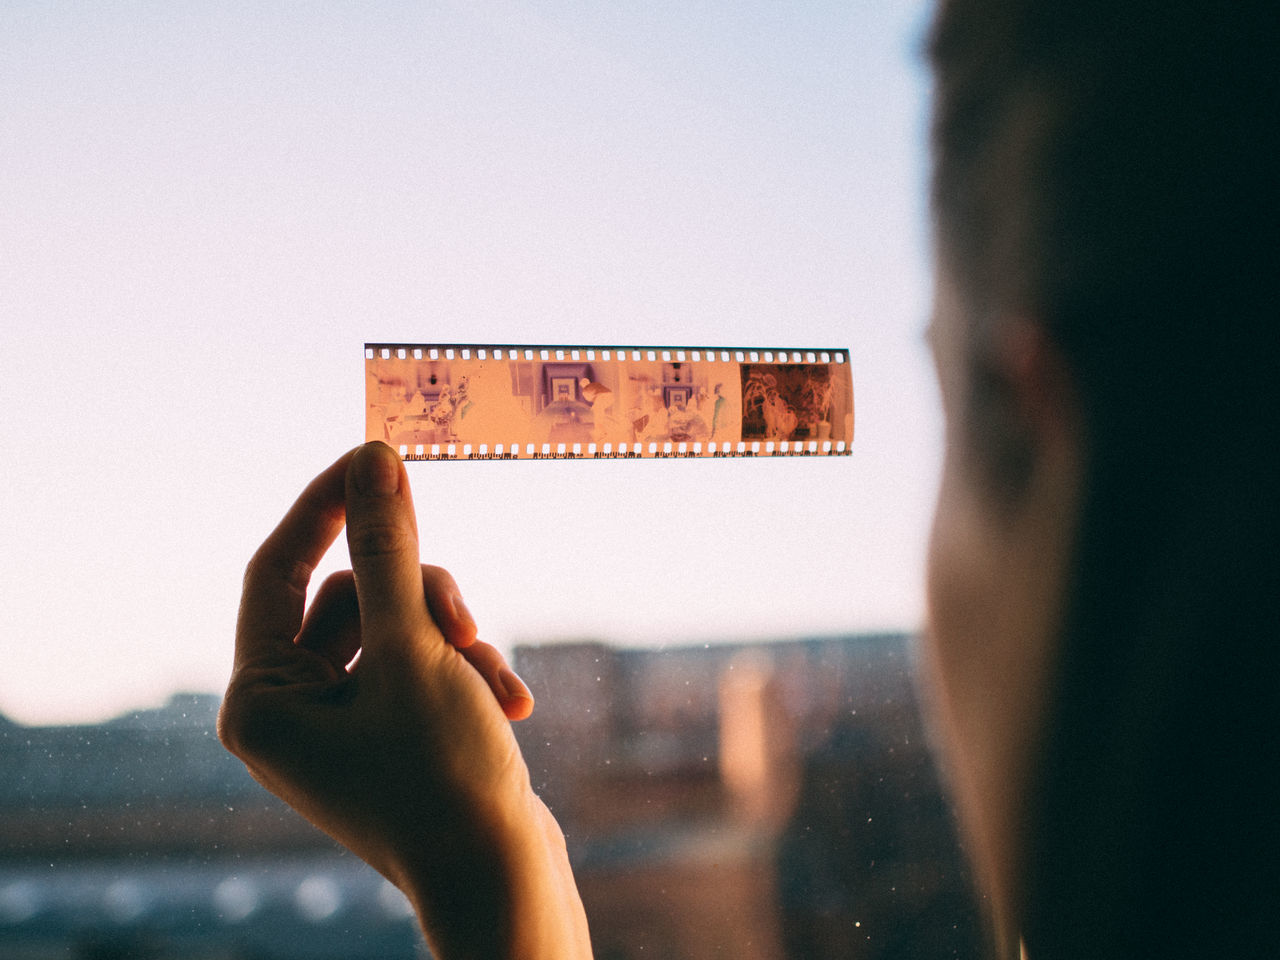 35mm 35mm film analog Analogue Photography close-up day holding human hand negative photography